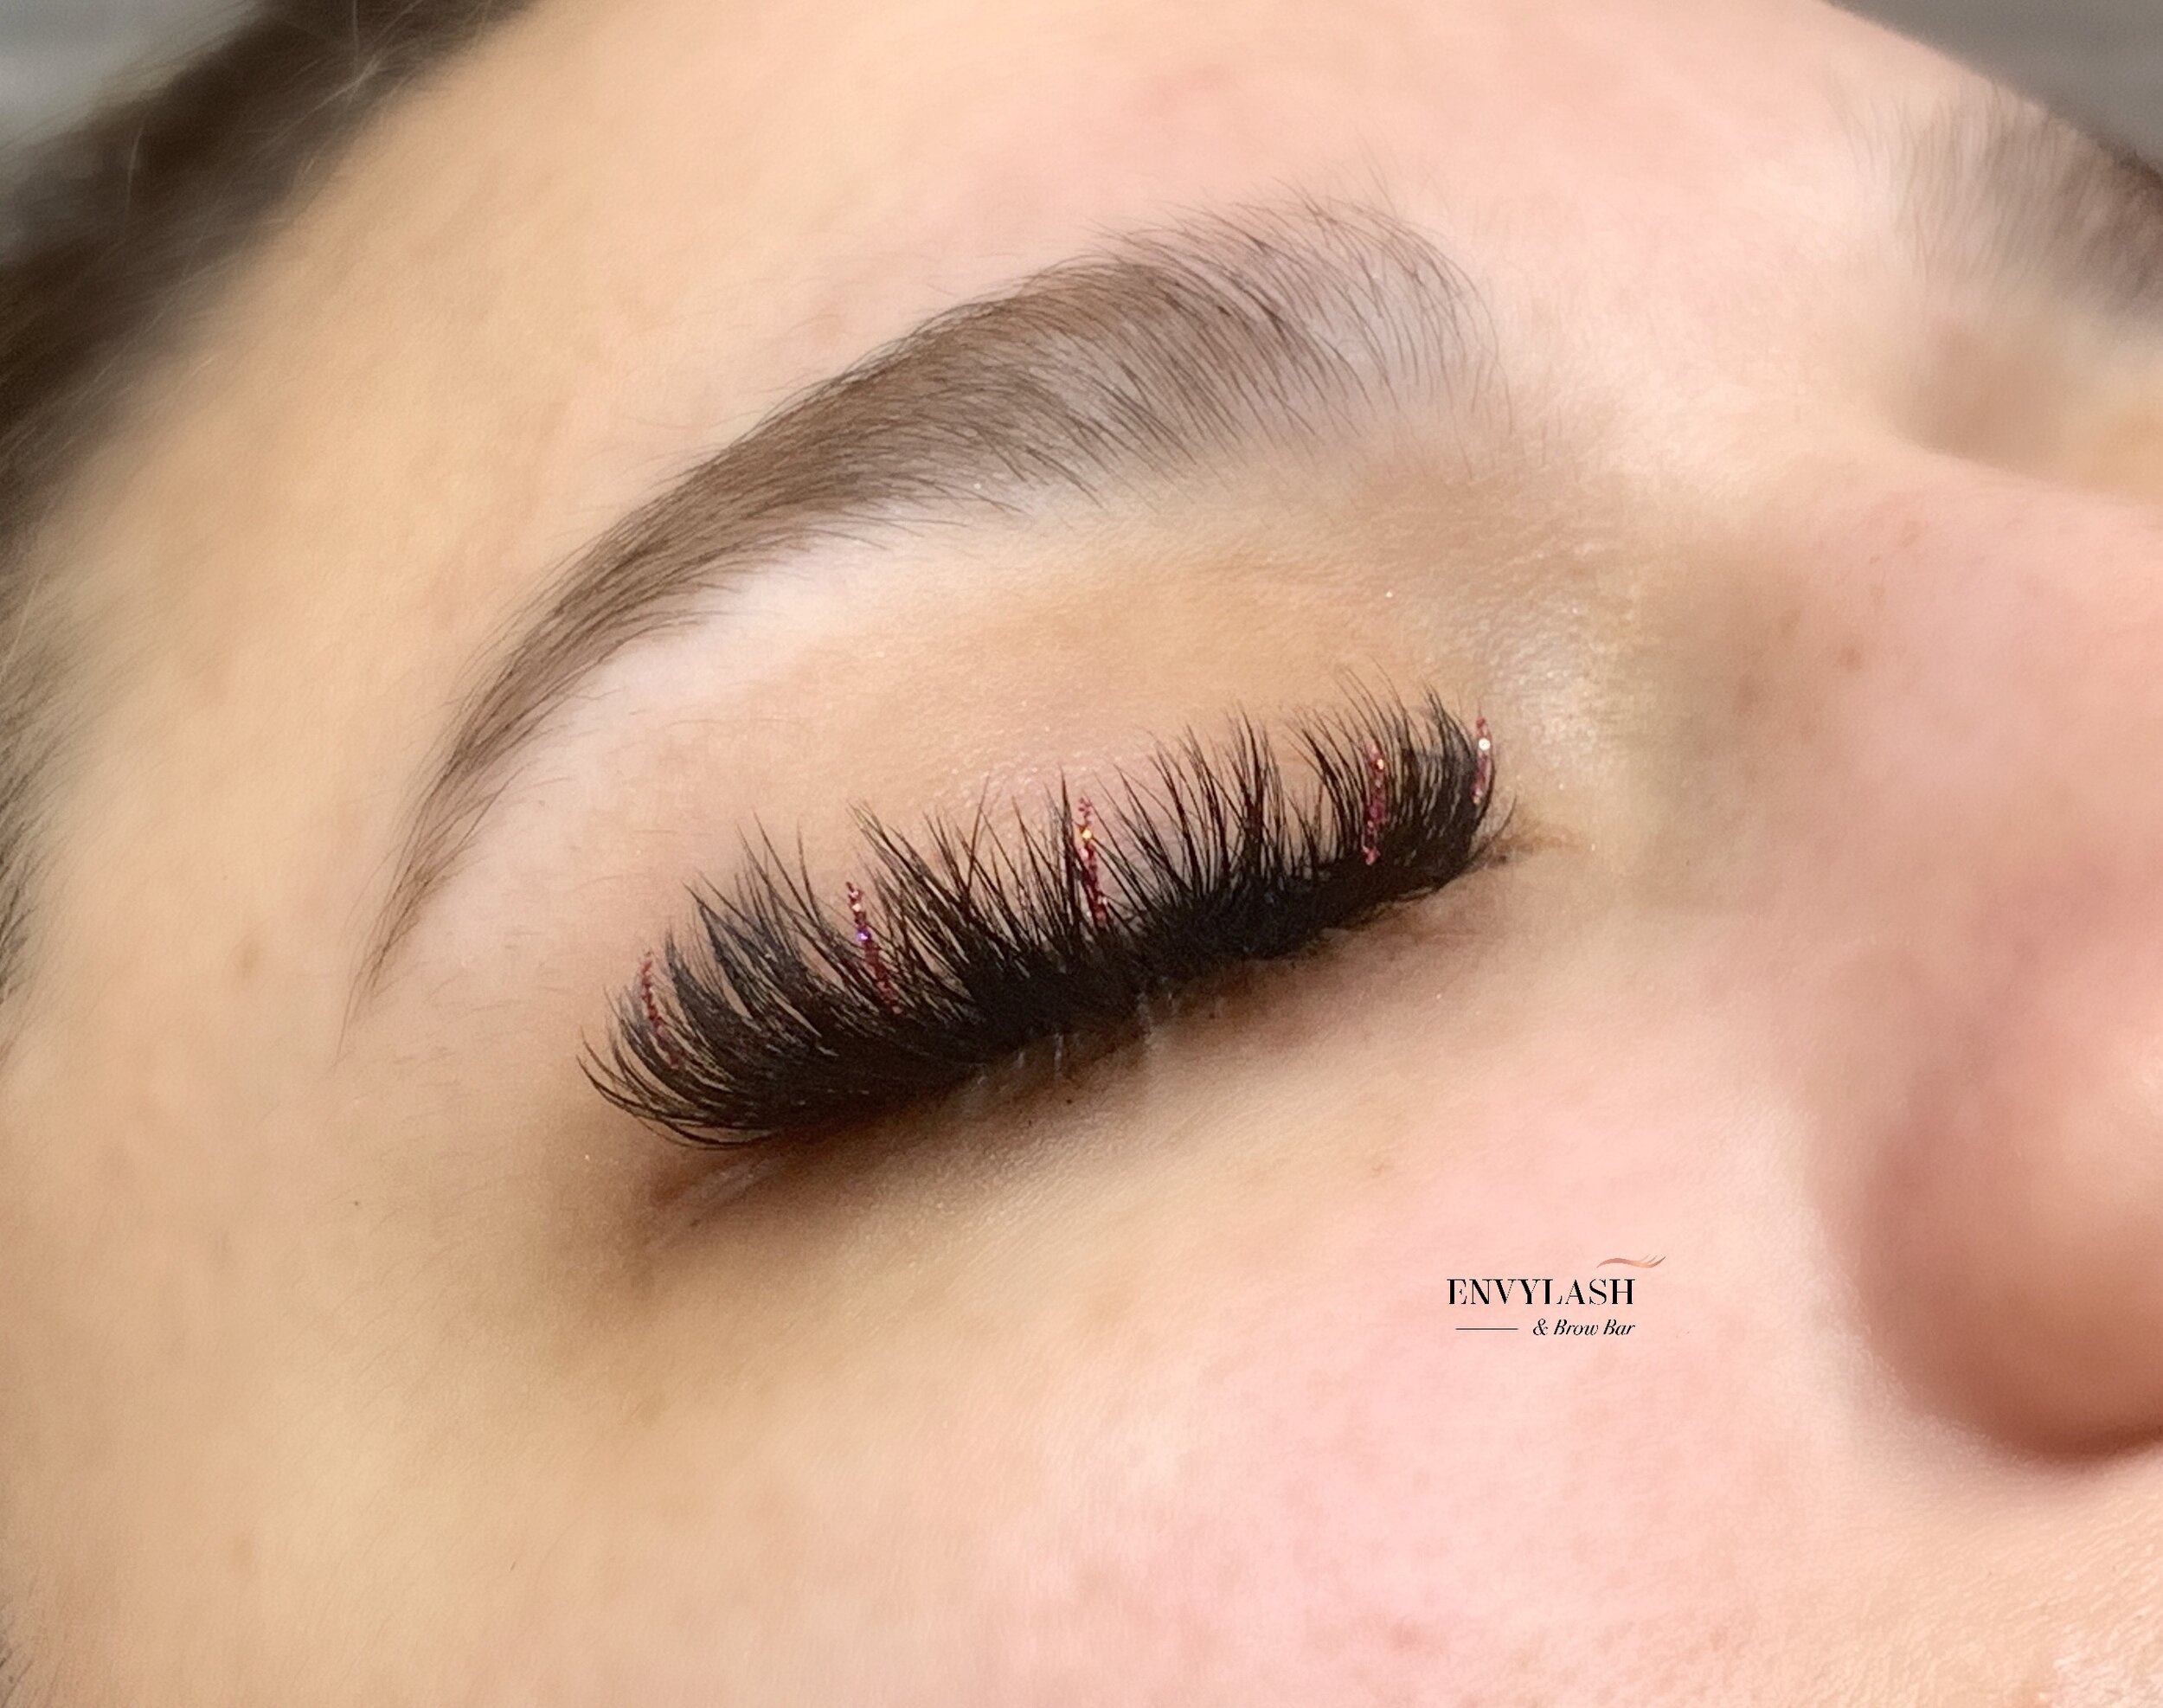 Volume Lashes with our Fabulash Glitter Lashes!